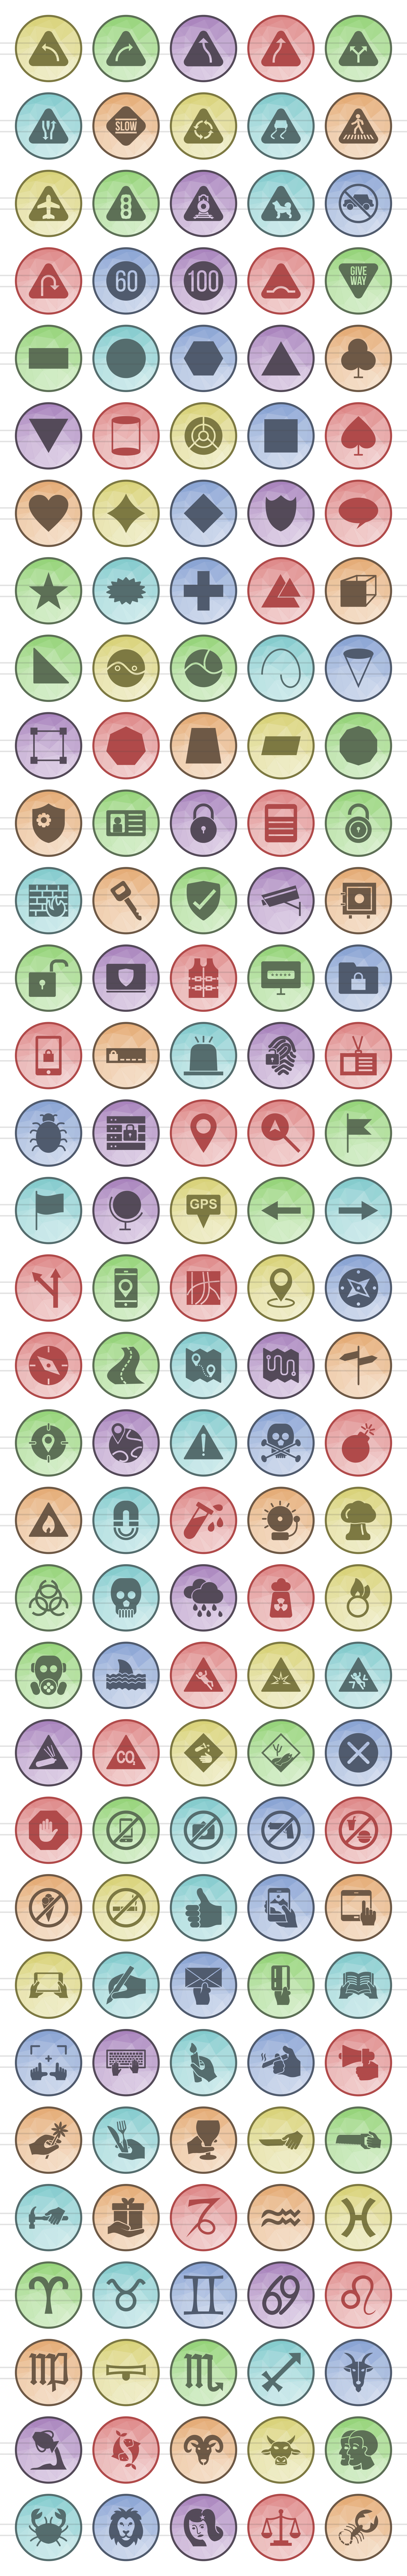 166 Sign Filled Low Poly Icons example image 2